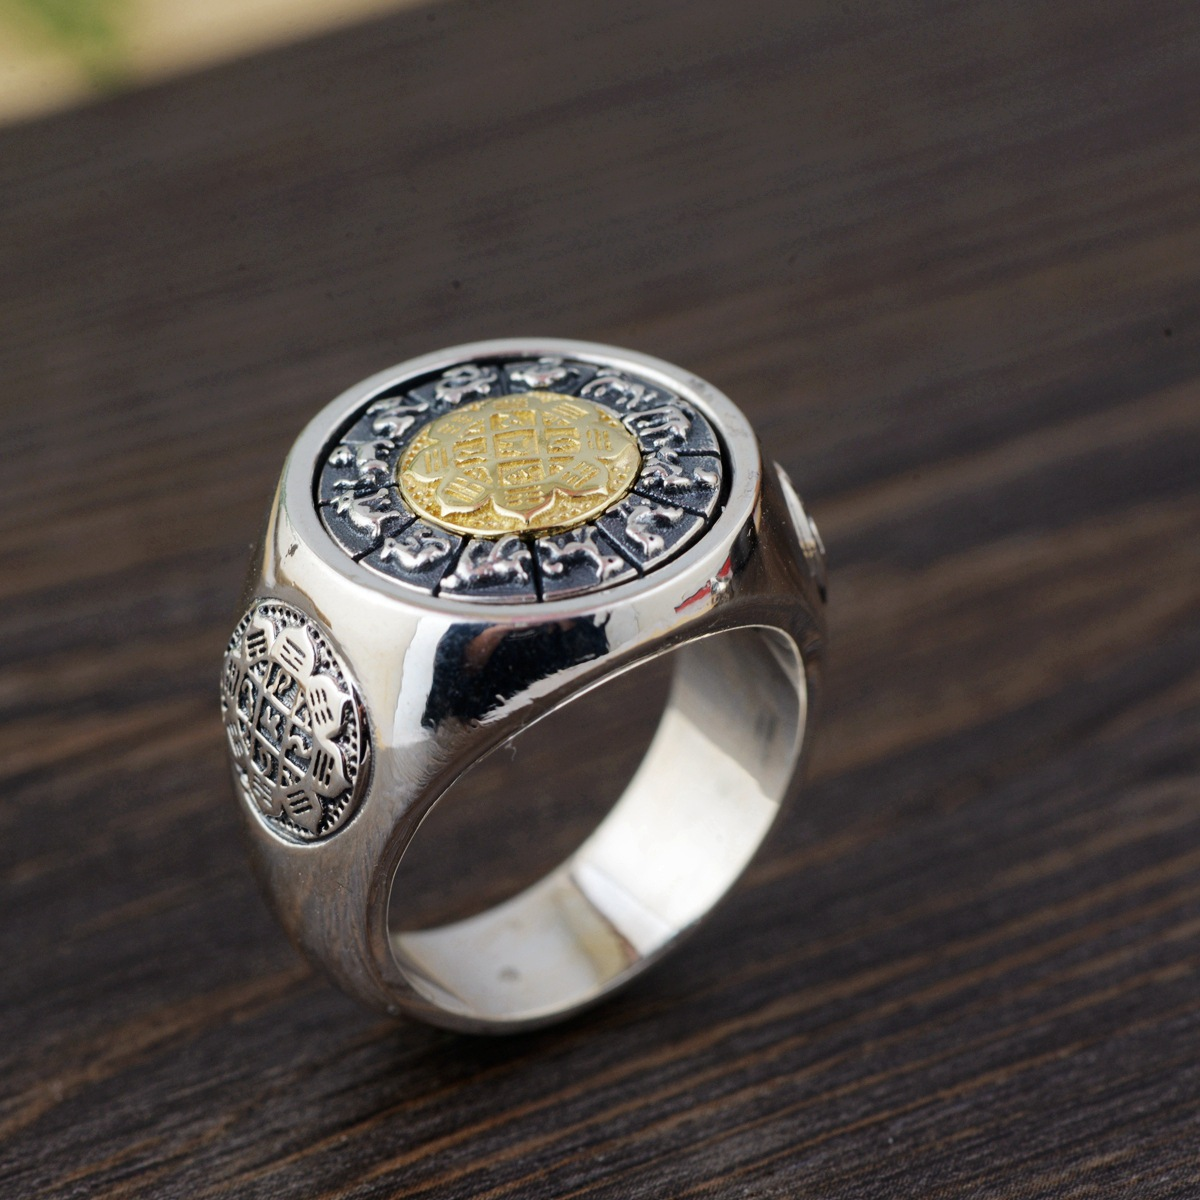 S925 silver restoring ancient ways process jiugong gossip rotating ring new Thai silver wholesale 2018 direct selling anel feminino thai restoring ancient ways leading mosaic unique ring wholesale corundum man with ambition